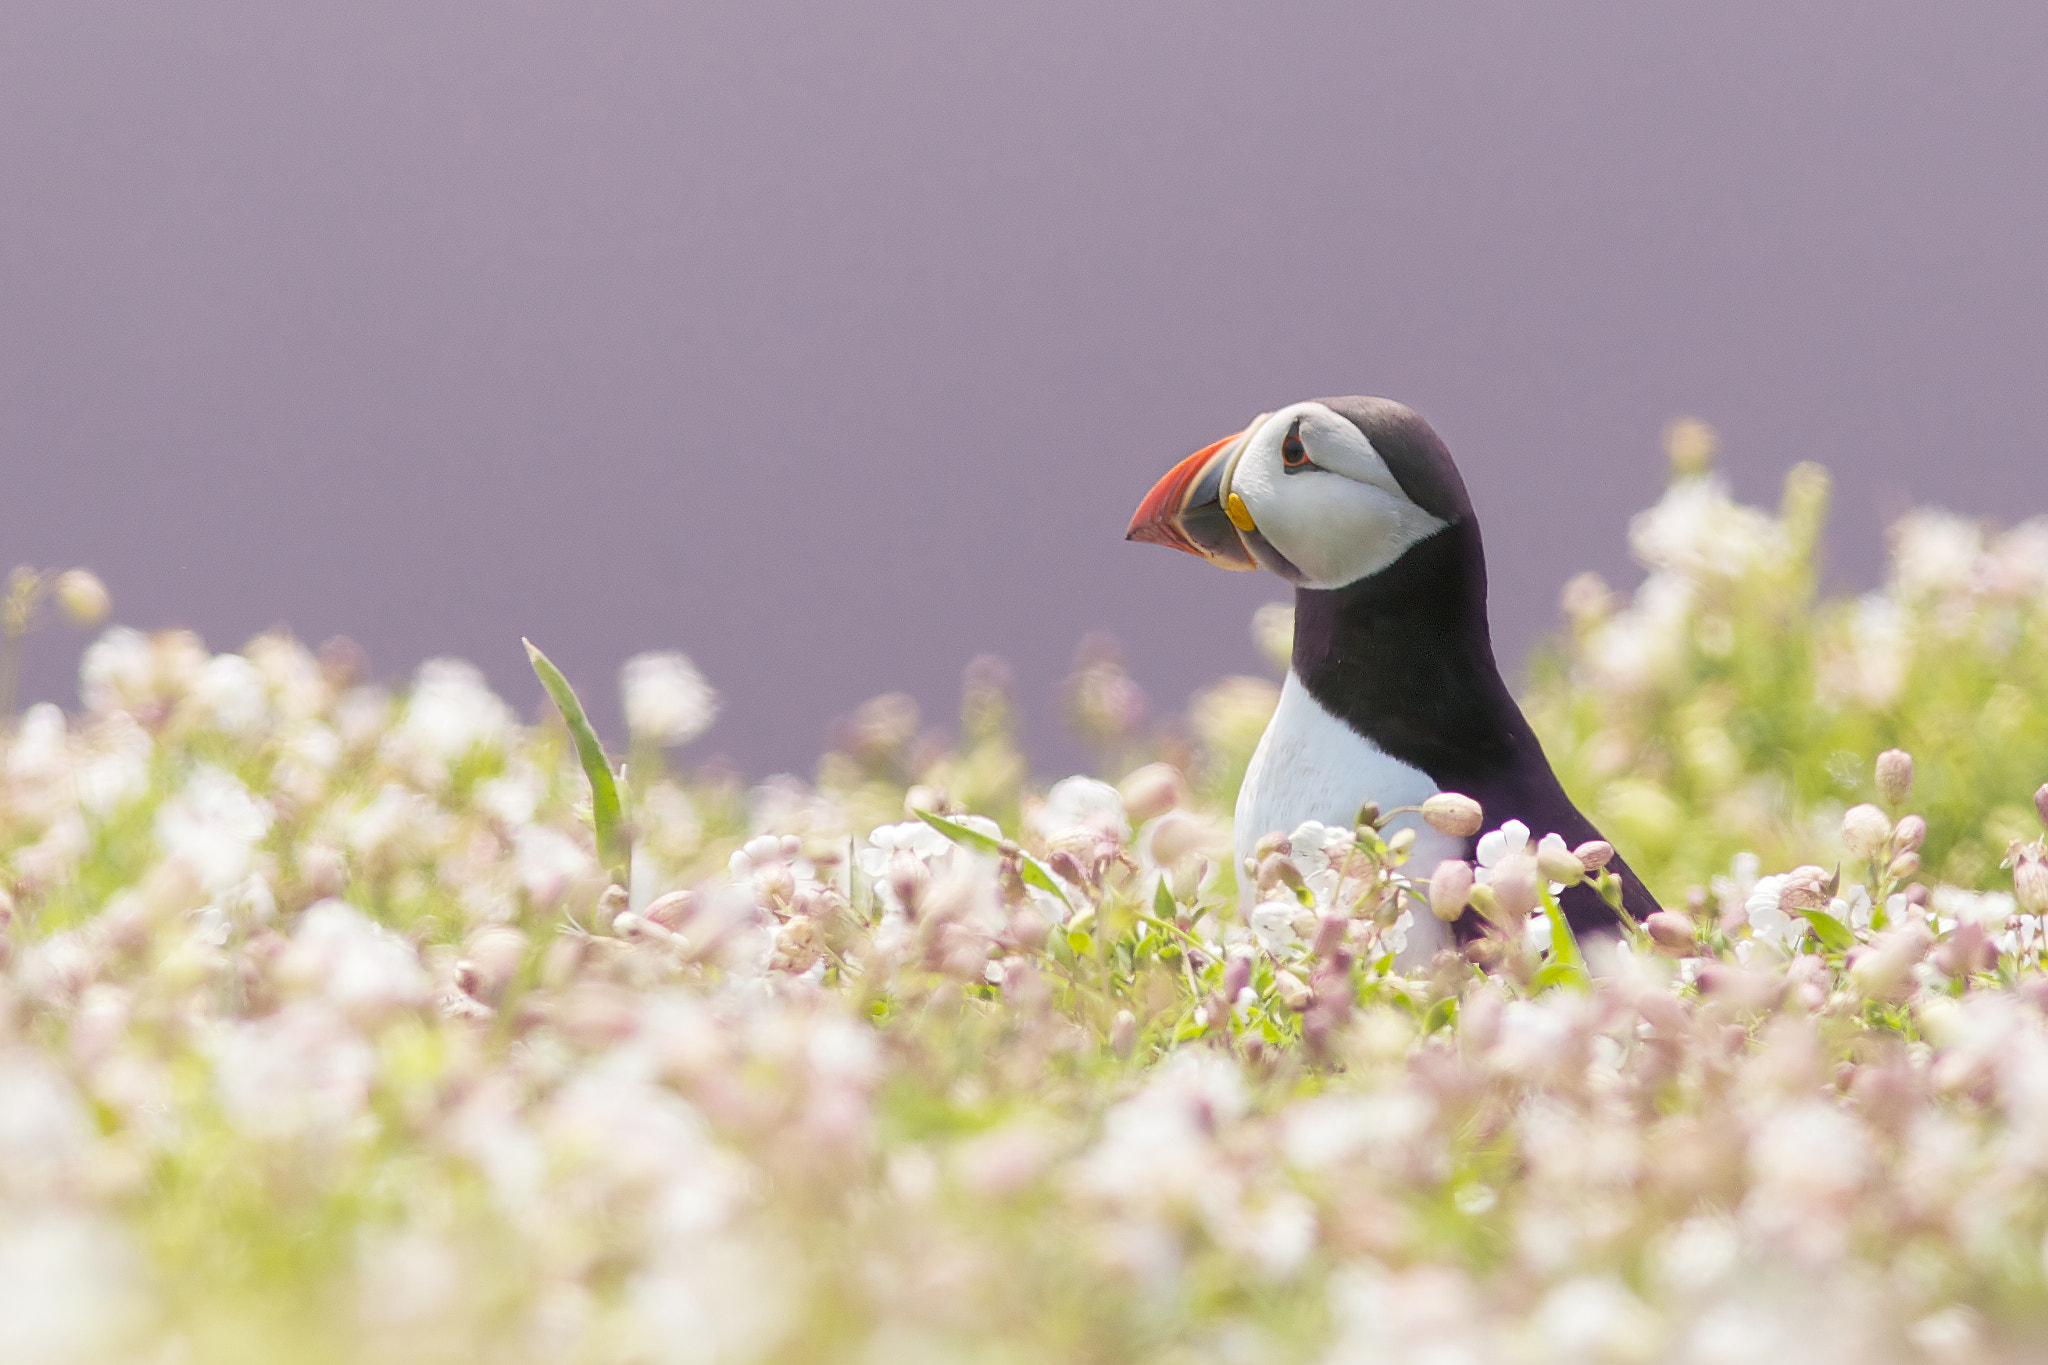 Photograph puffin in pink by Mark Bridger on 500px